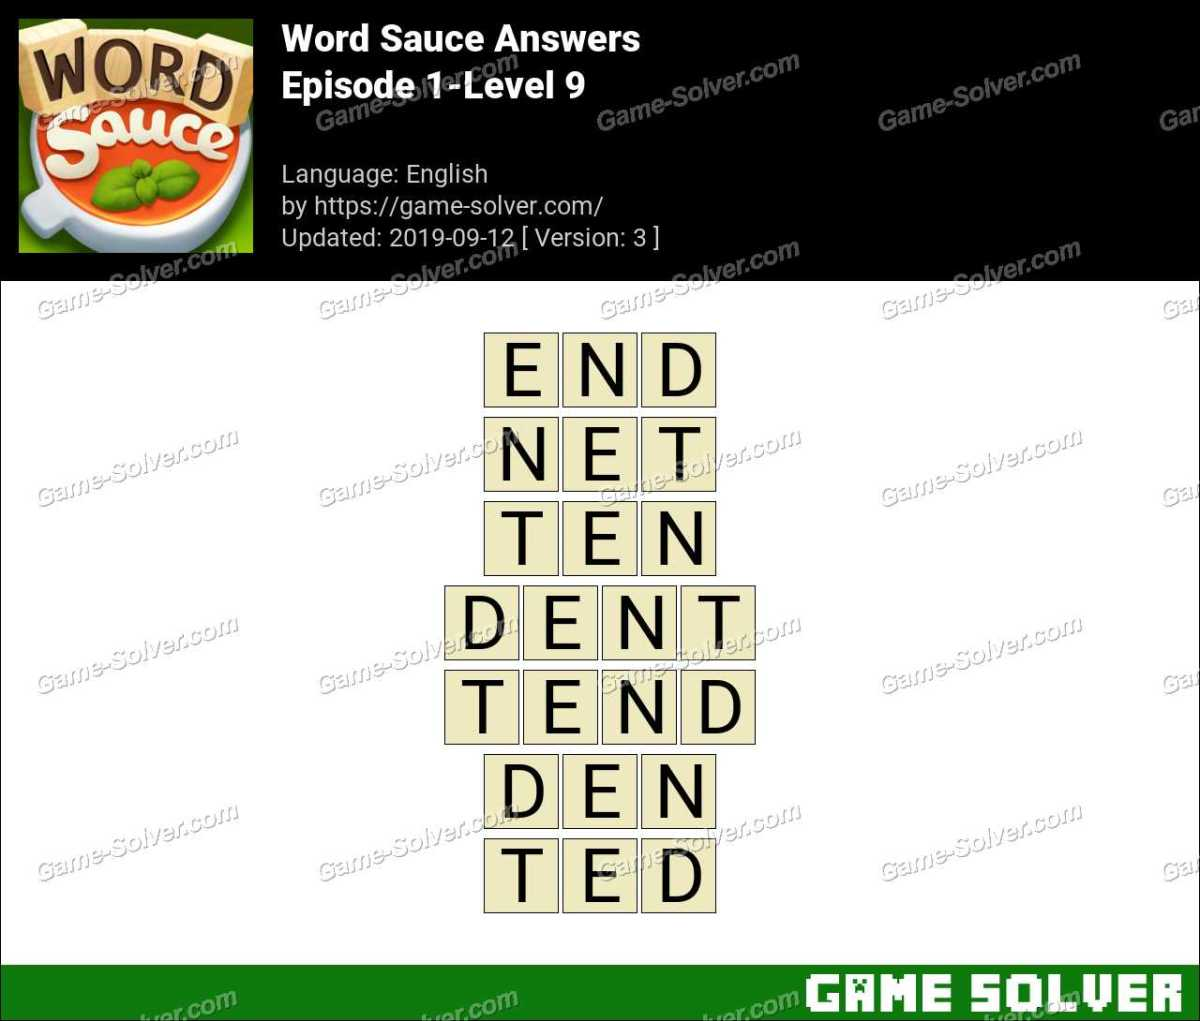 Word Sauce Episode 1-Level 9 Answers